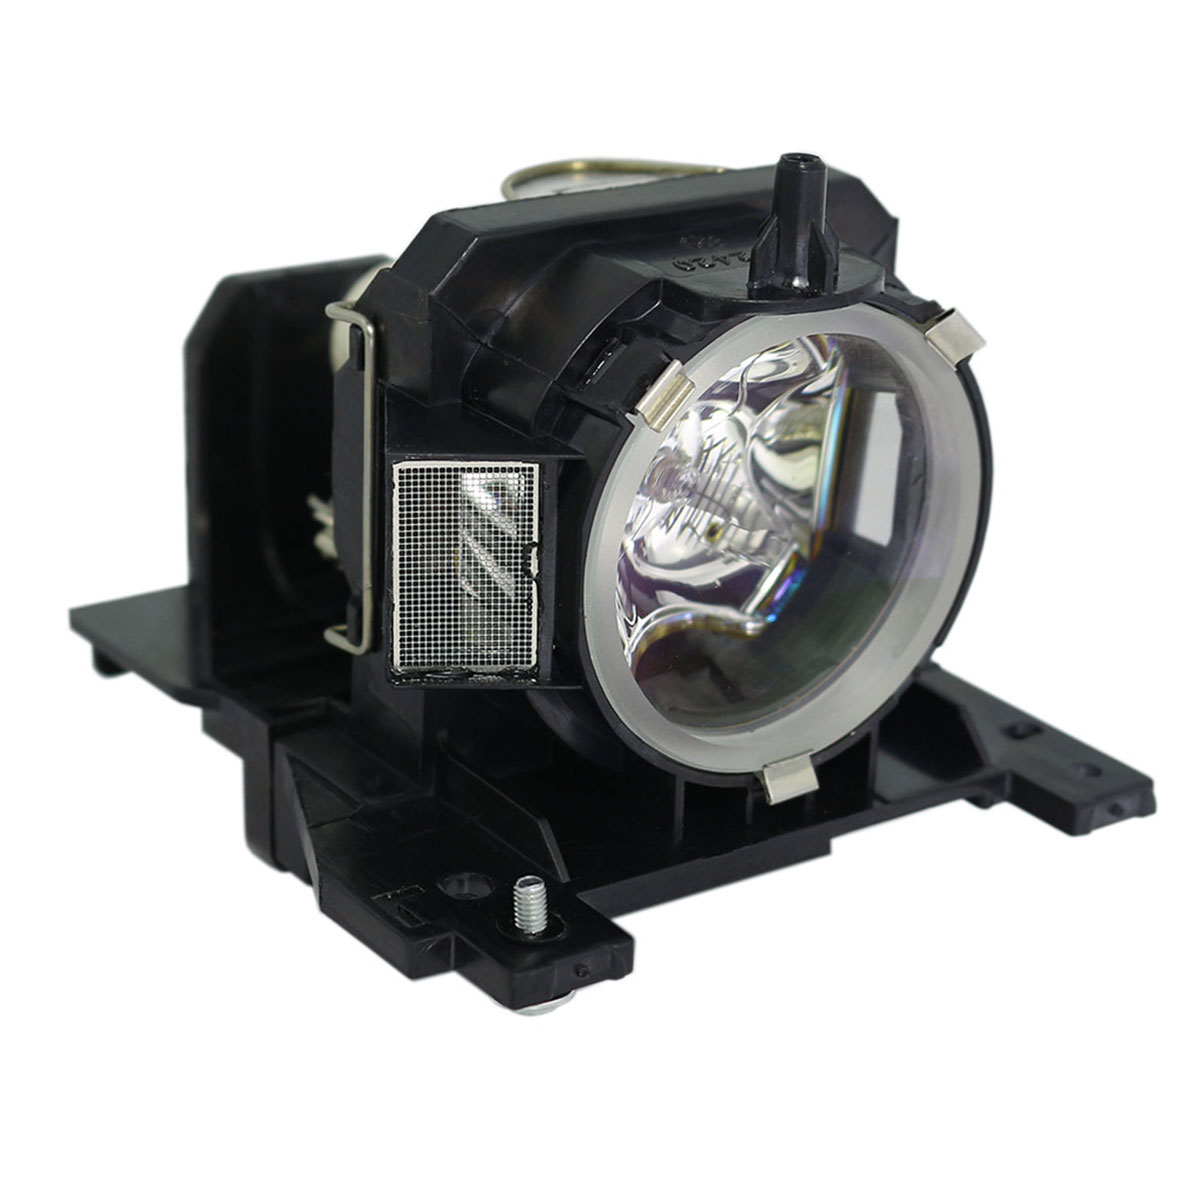 Original Philips Projector Lamp Replacement with Housing for Hitachi CP-X301 - image 1 of 5